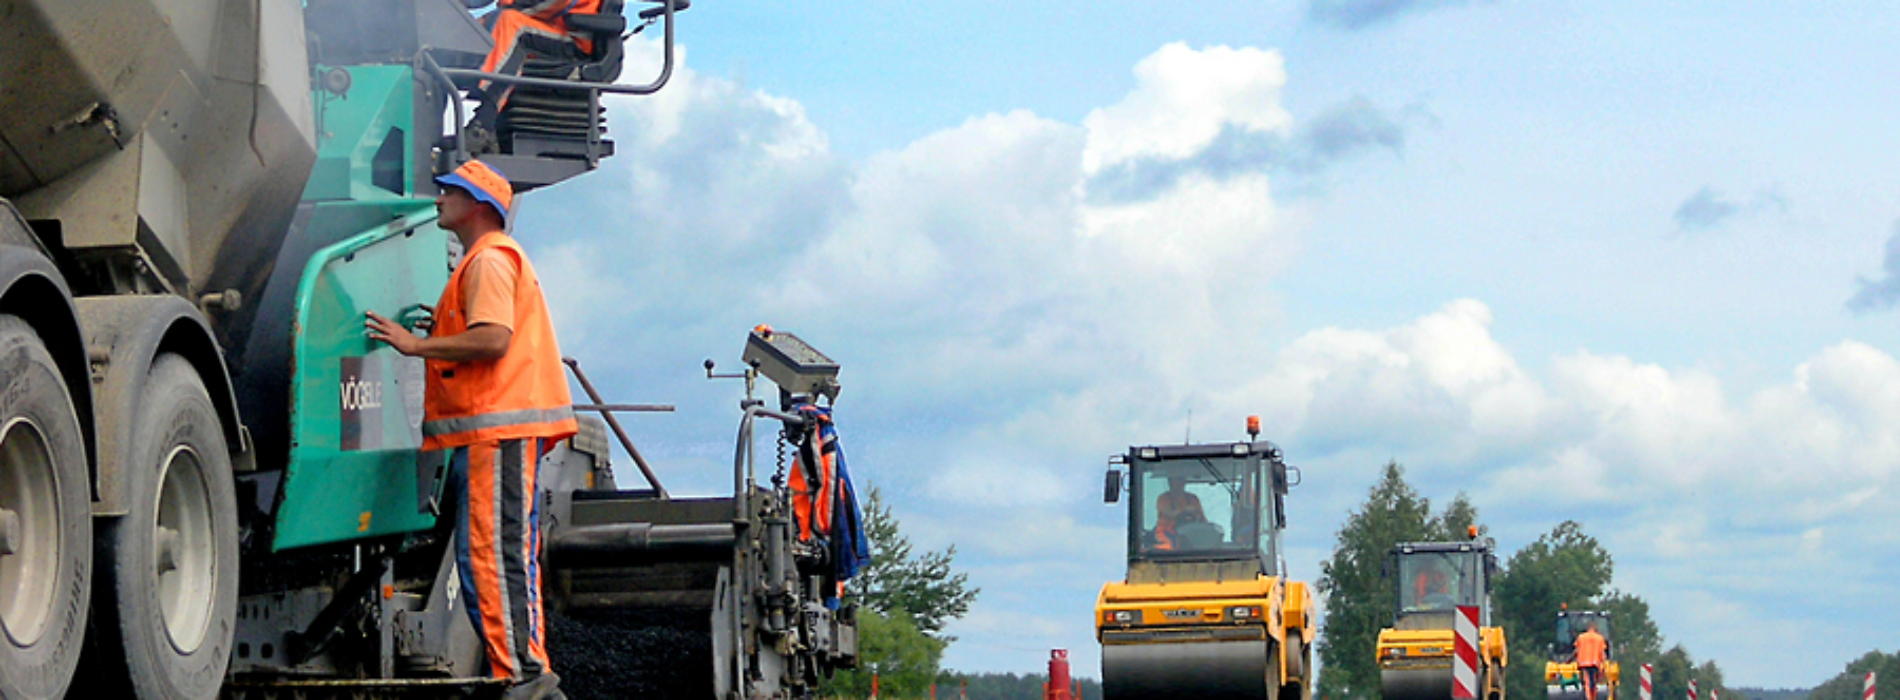 Improve Your Neighborhood with a Road Construction Company